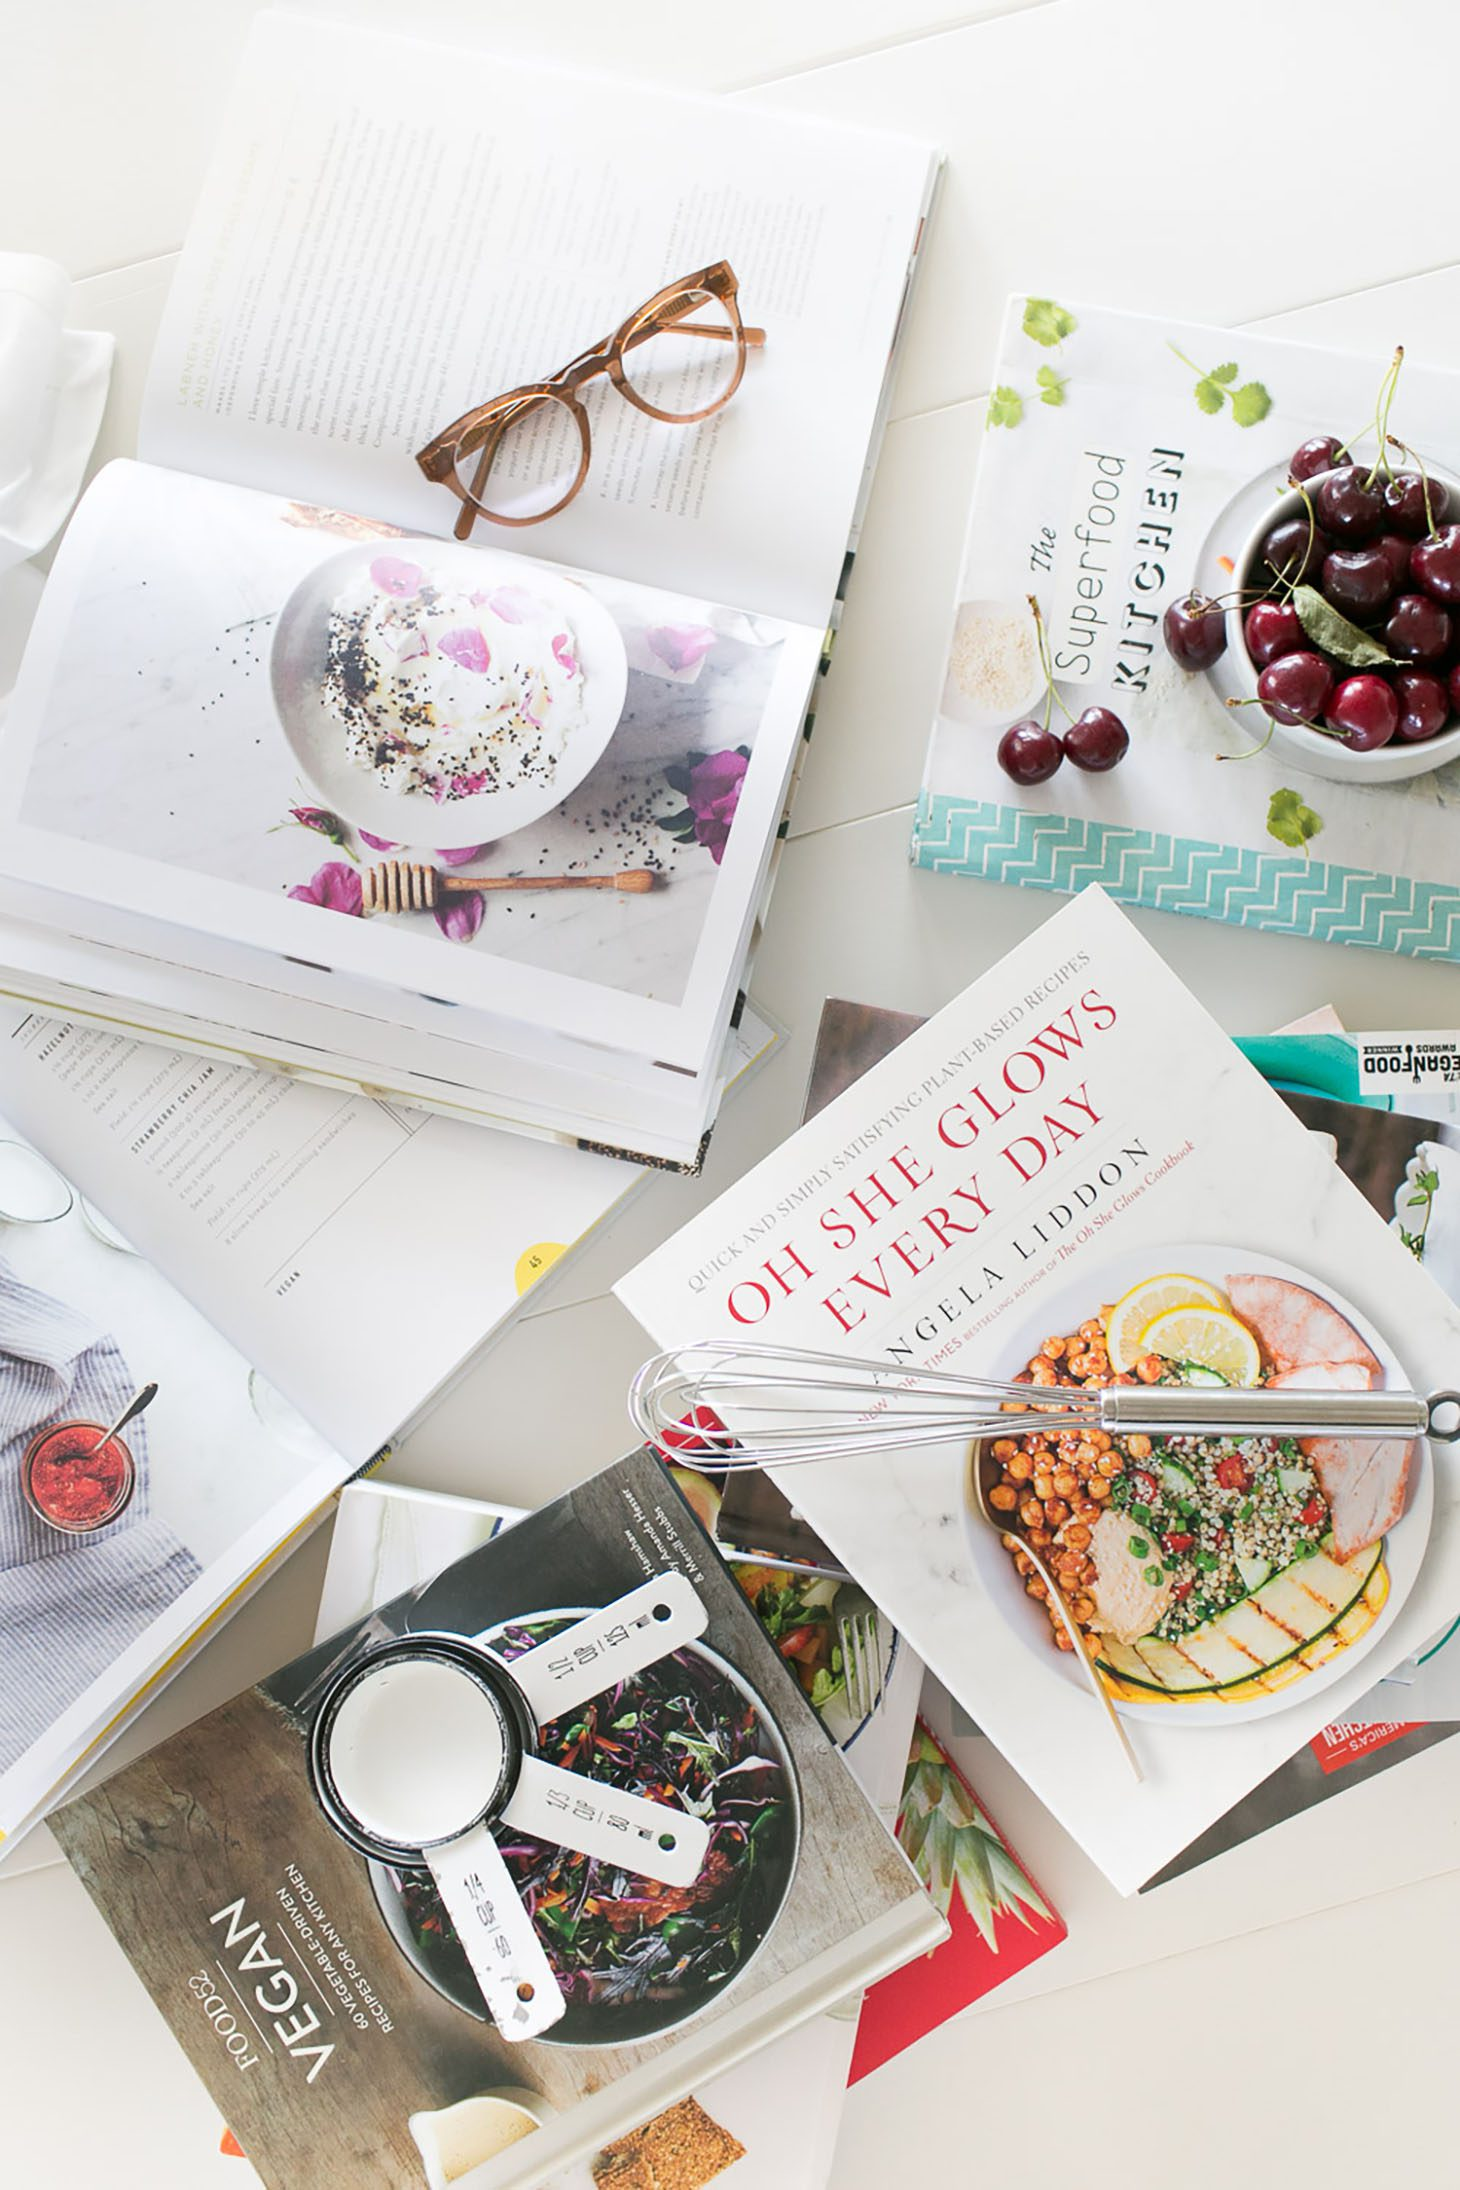 Jillian Harris Advice for Moving to a Plant Based Lifestyle